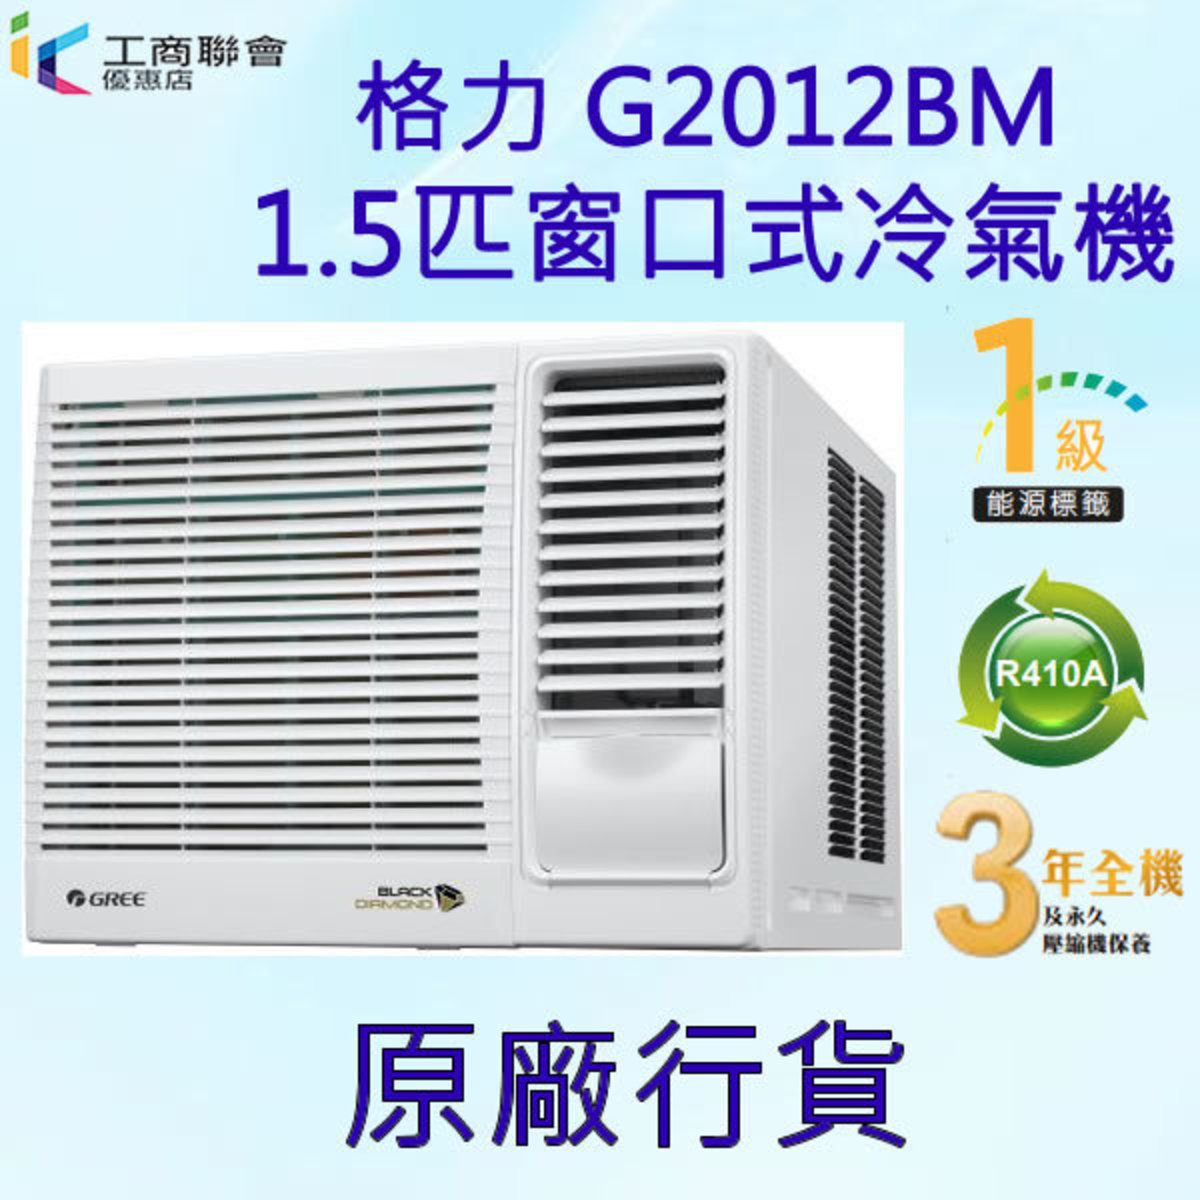 G2012BM 1.5HP Window Air Conditioner (Free removal service)